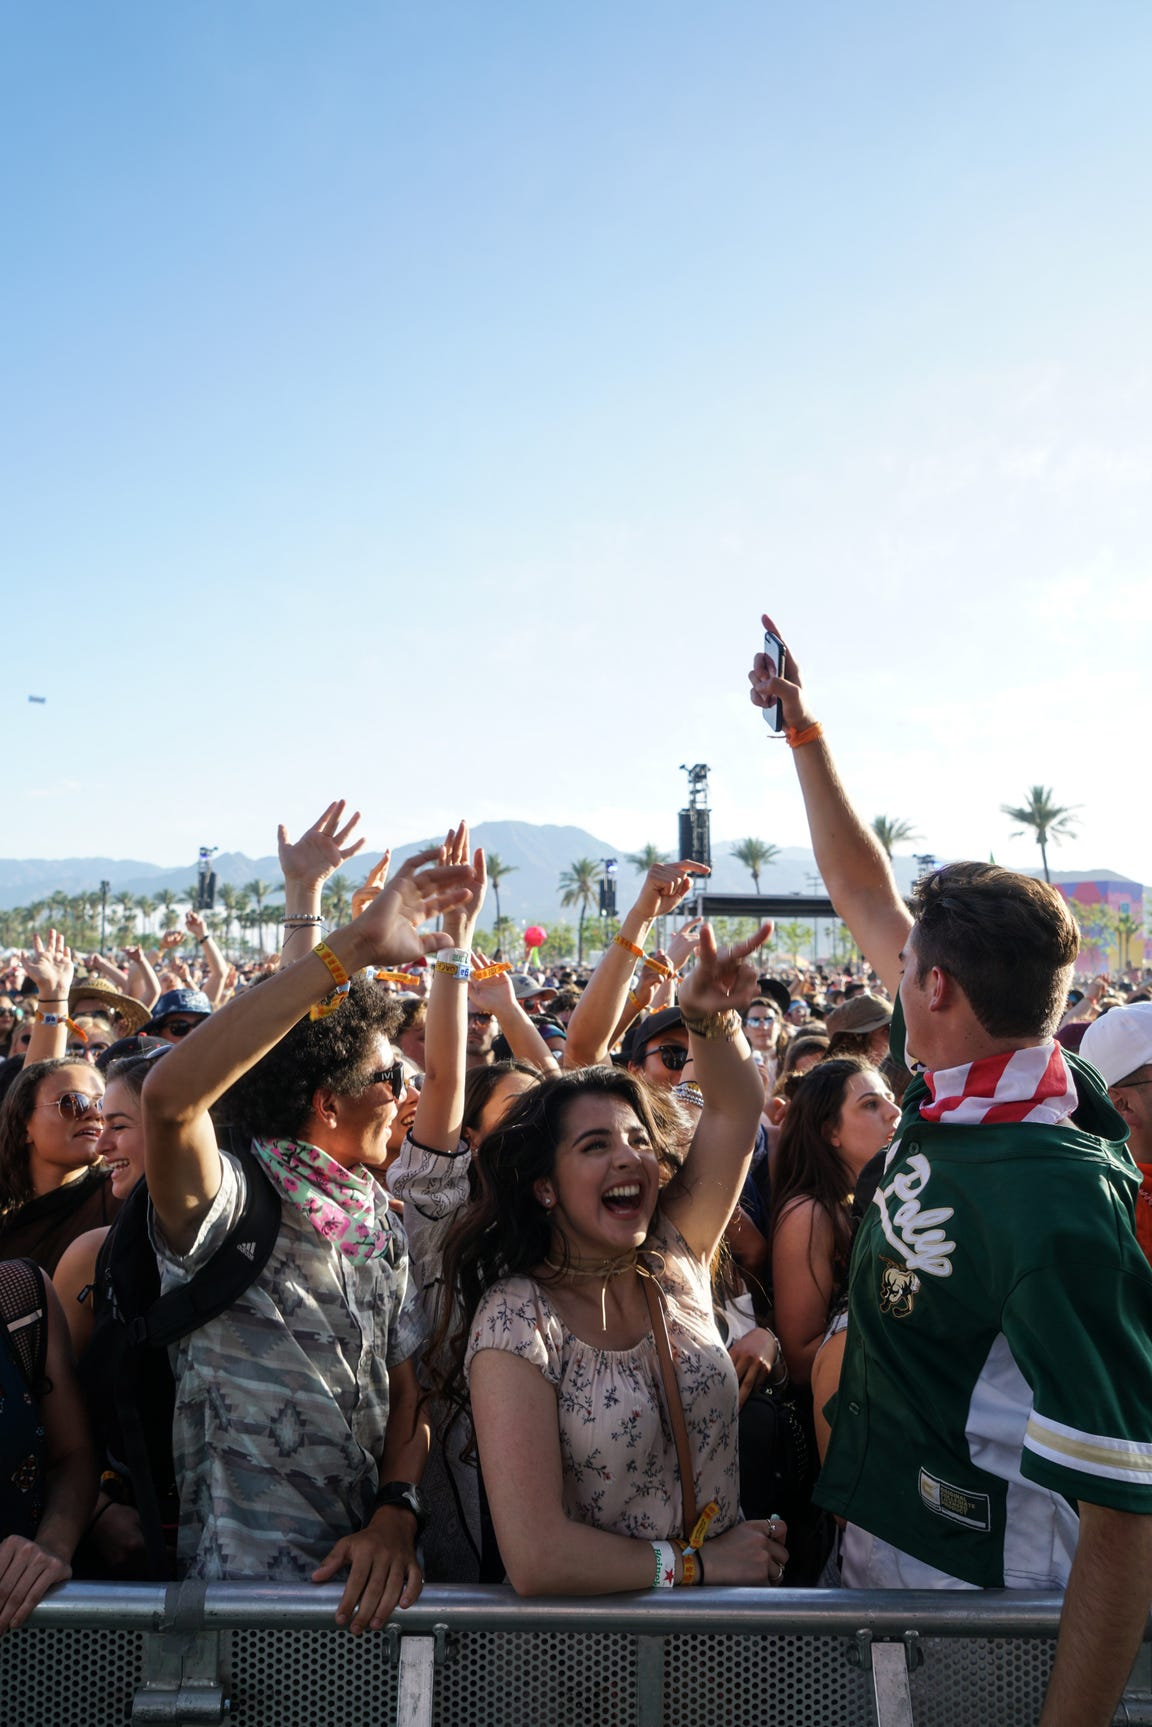 A crowd dances to Bastille during the Coachella Valley Music and Arts Festival at the Empire Polo Club, Indio, Calif., April 17, 2017.